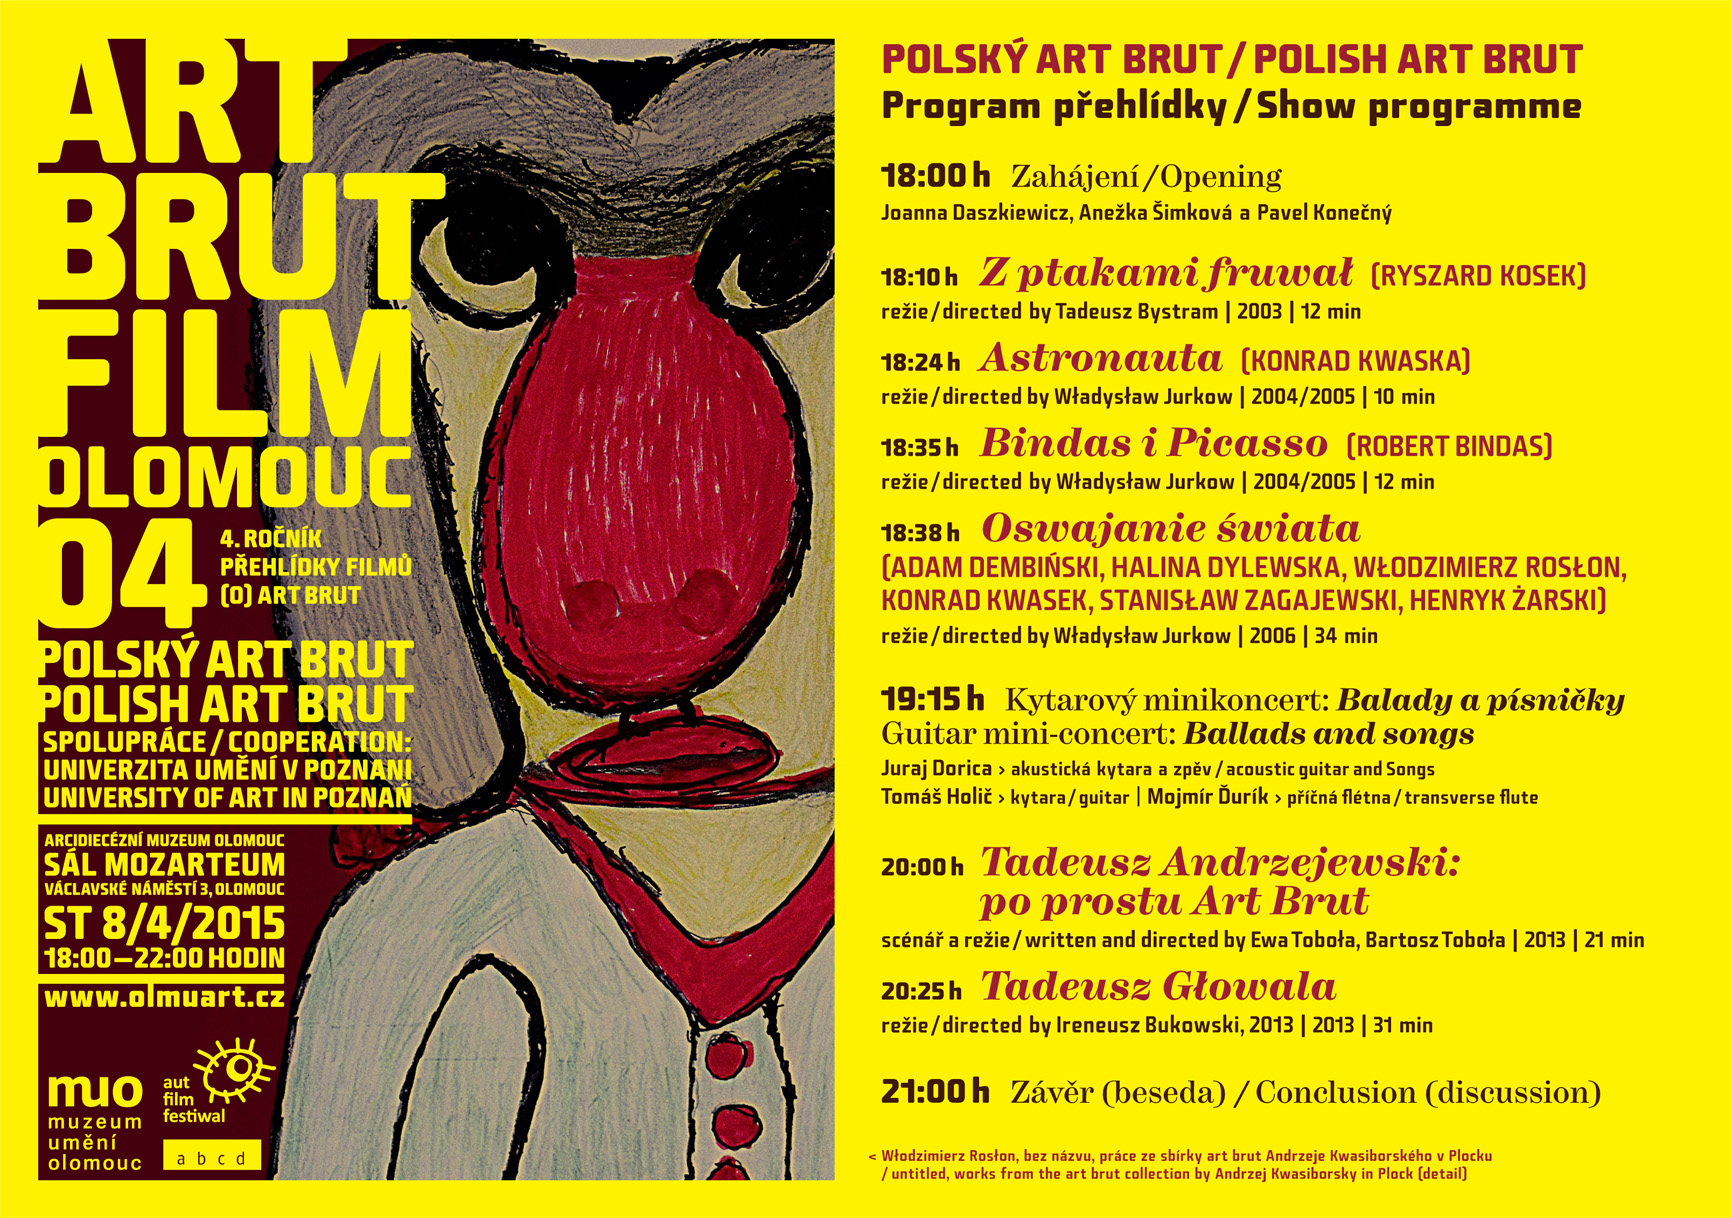 ART BRUT FILM 04 - Olomouc 2015 - program